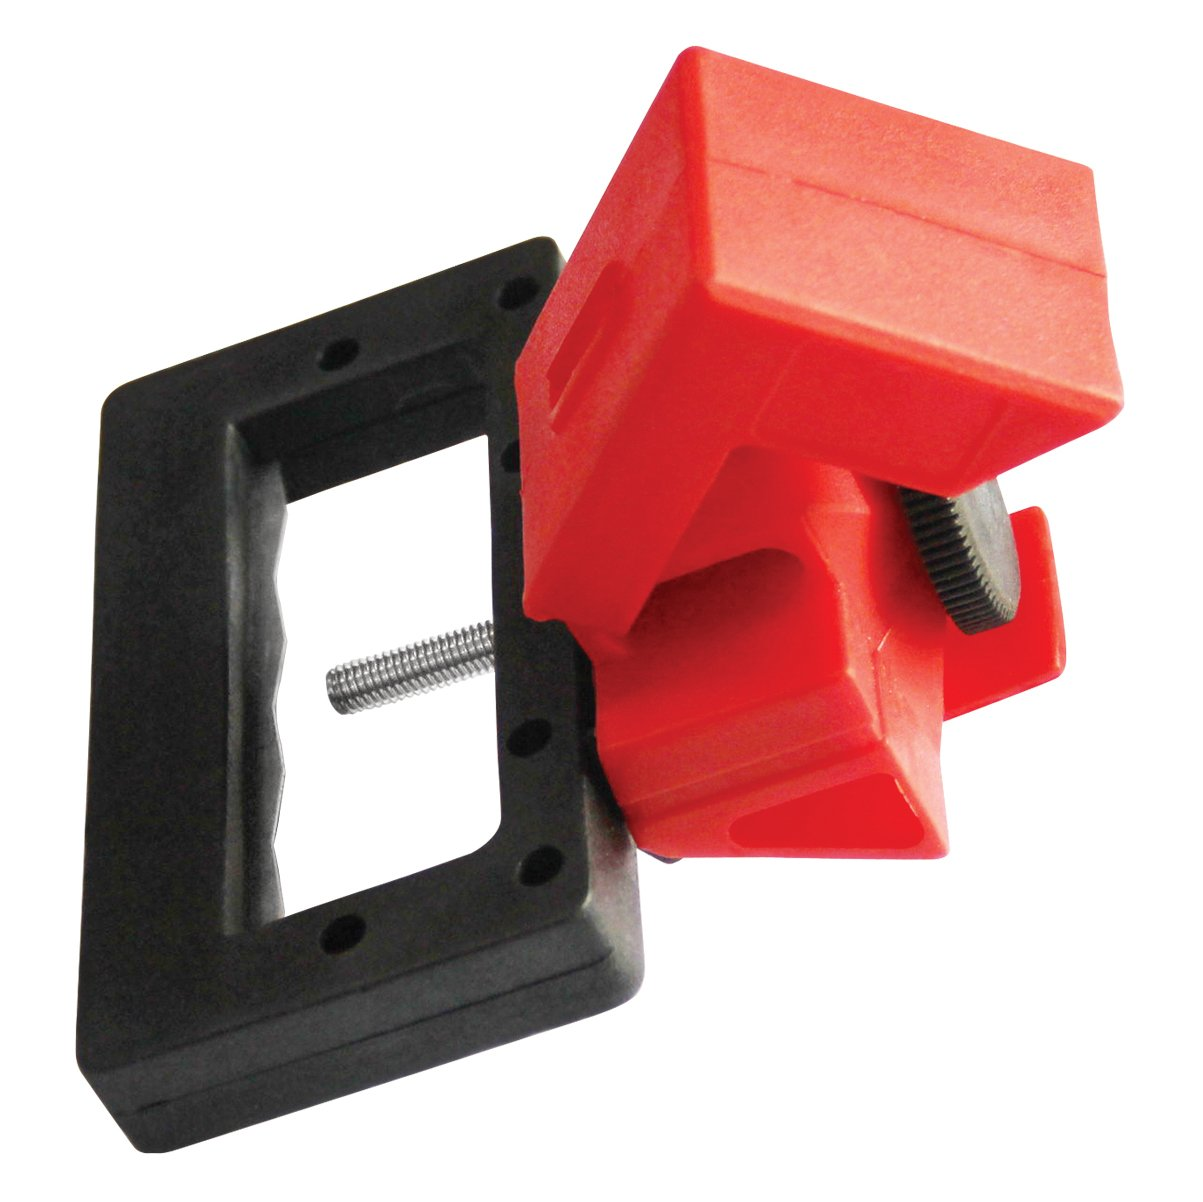 Lockout Safety Supply 7258 480/600V Breaker Lockout, 2 1/4'' x 7/8'', Red